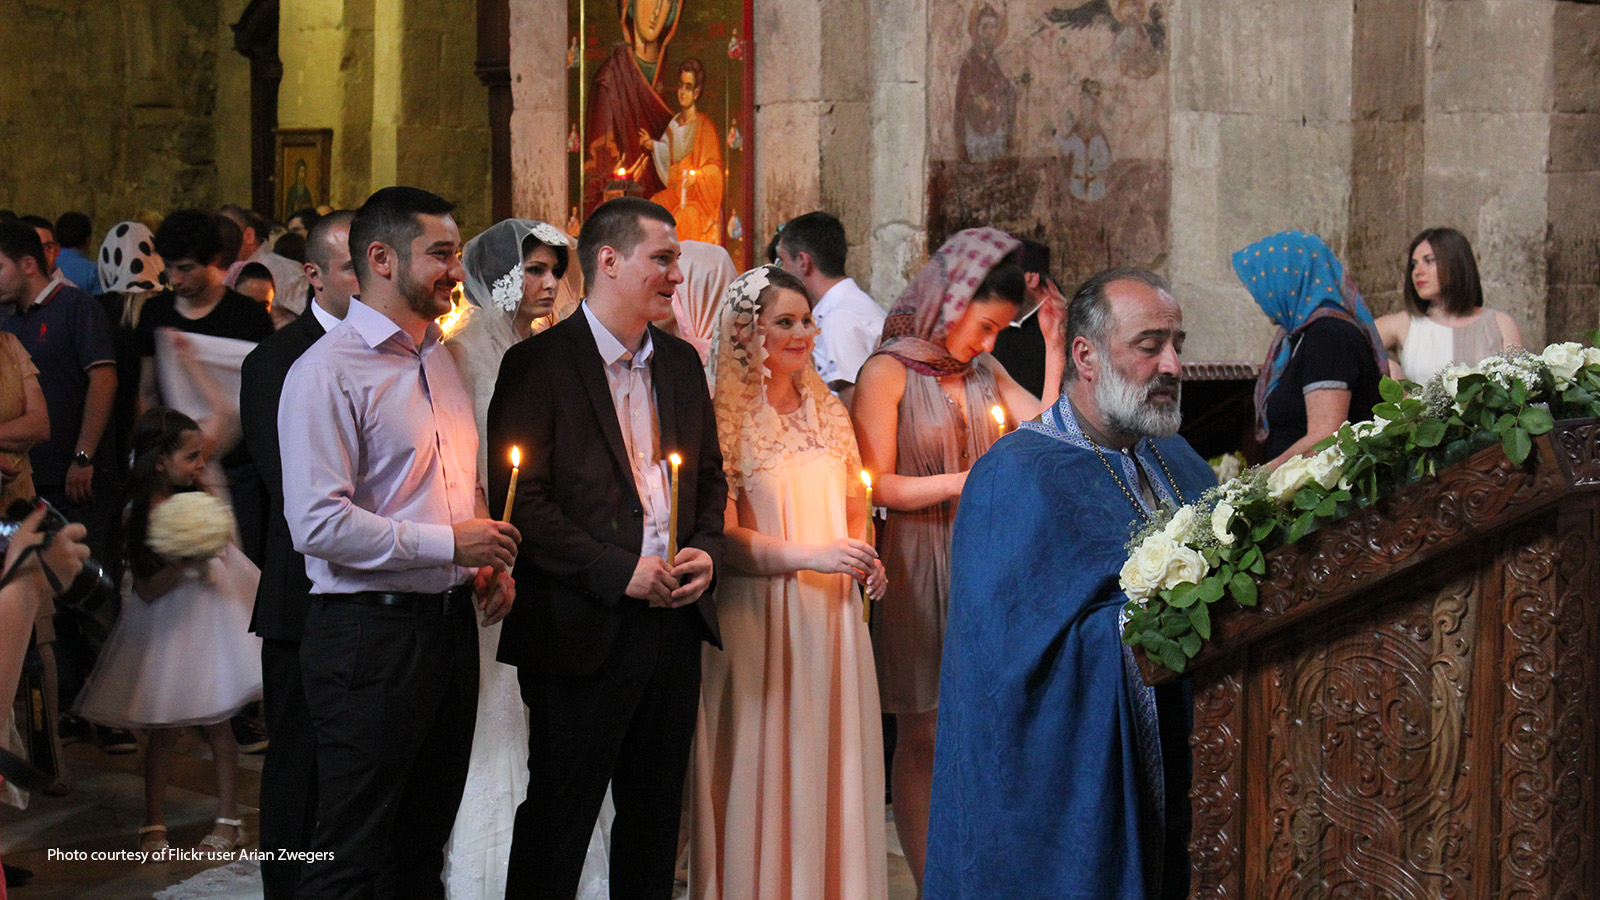 Wedding in an Eastern Orthodox church in Europe.